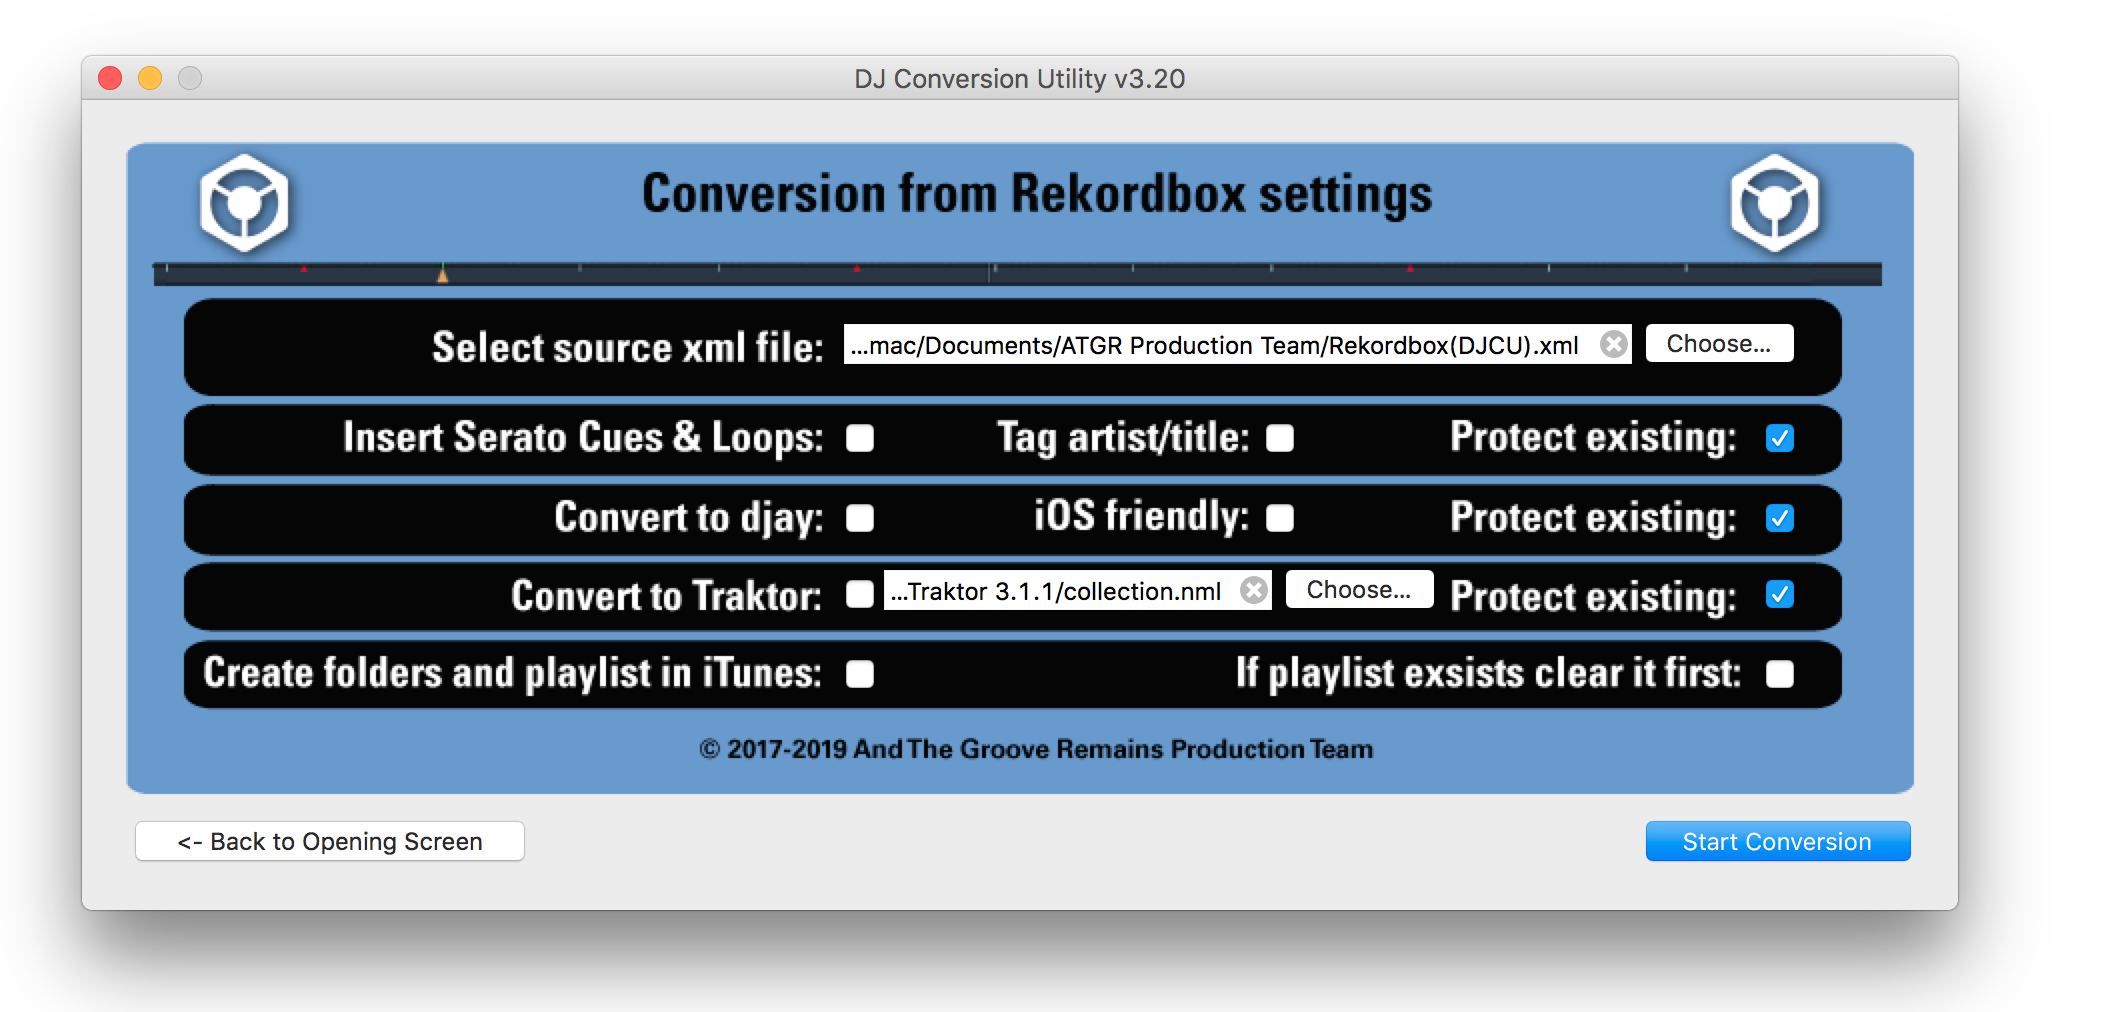 MacOS only] From Rekordbox to Traktor added to the DJ